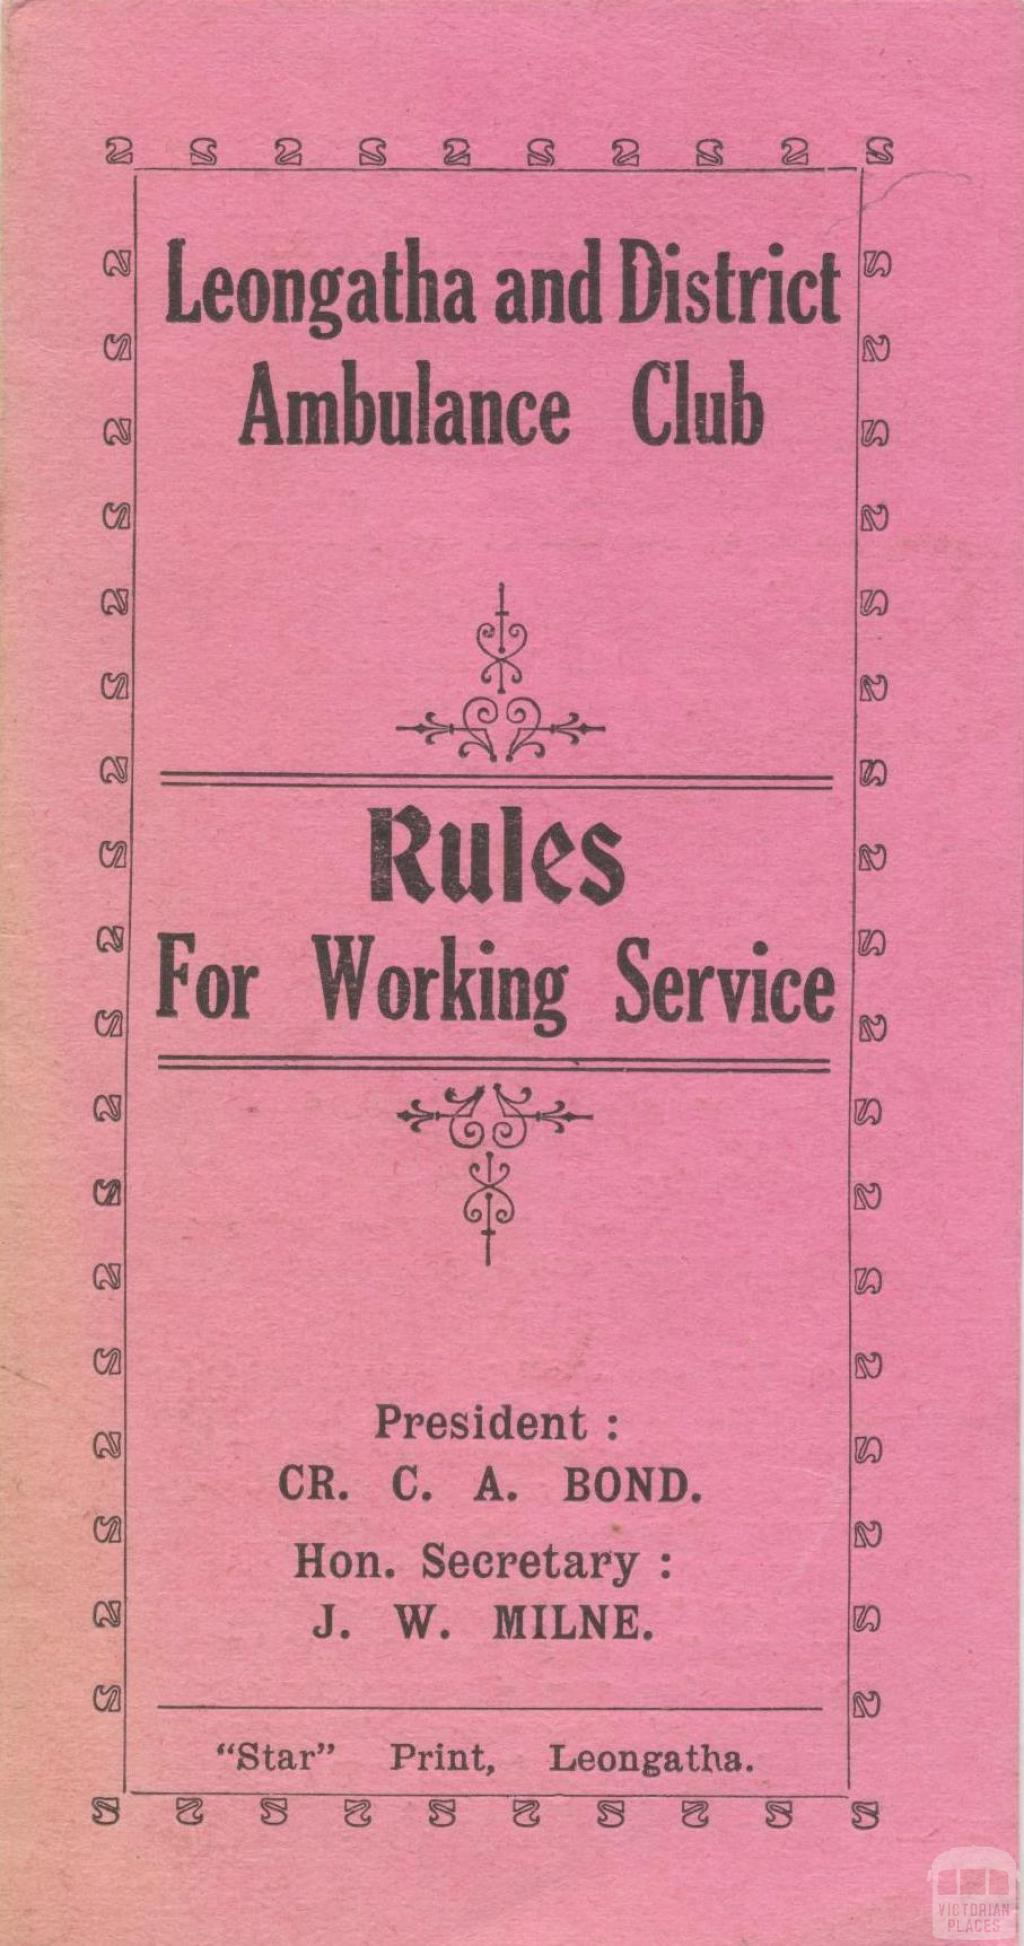 Leongatha and District Ambulance Club Rules, 1930